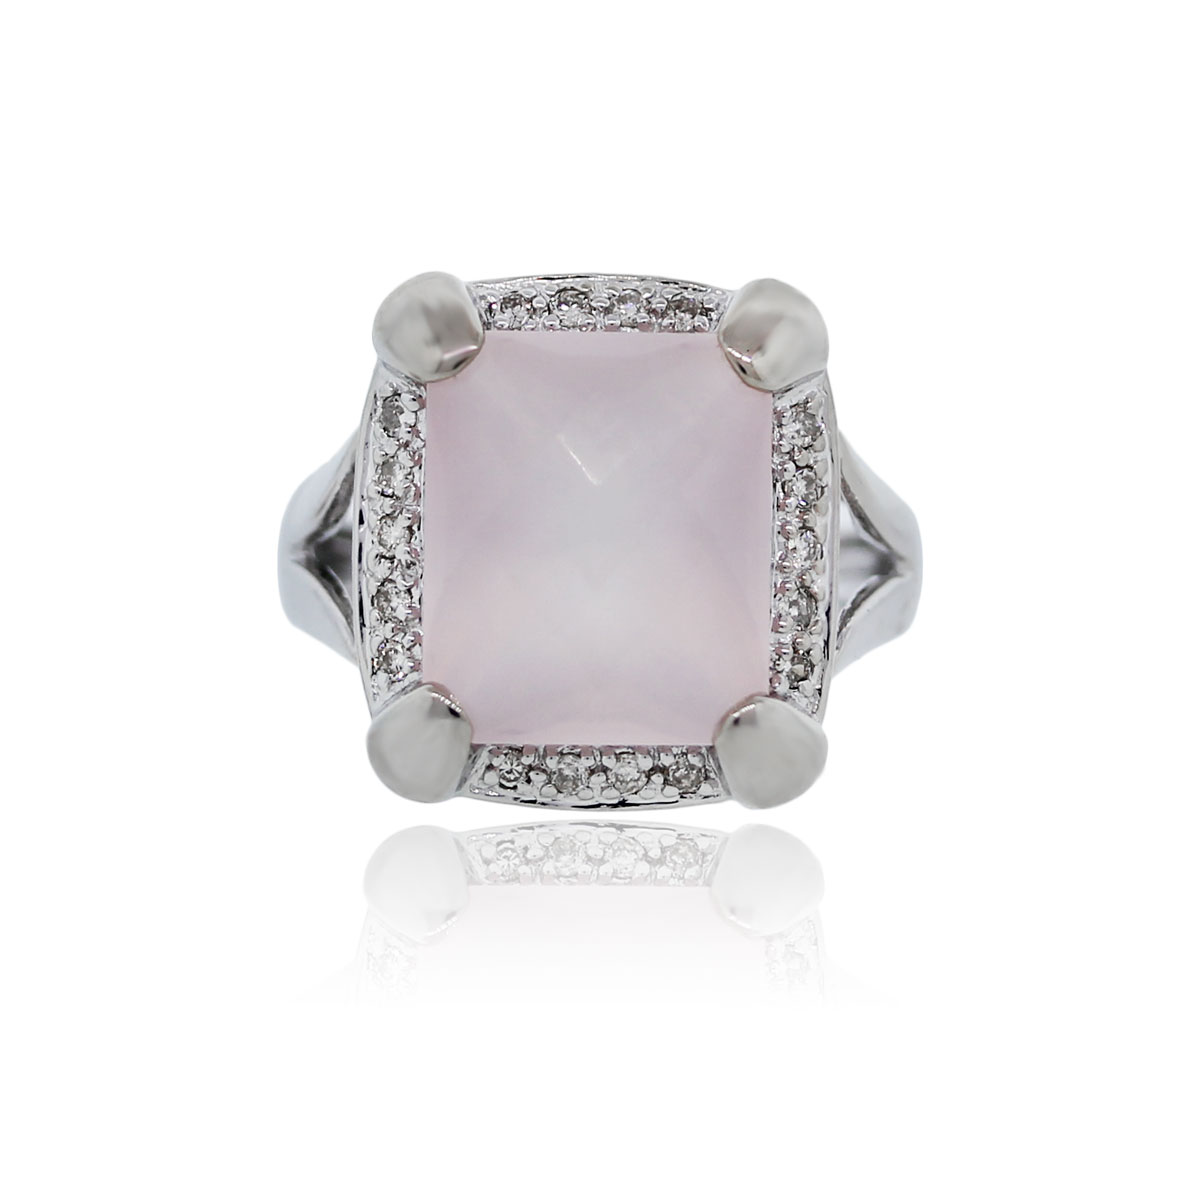 You are viewing this 14K White Gold Checkered Rose Quartz Diamond Cocktail Ring!